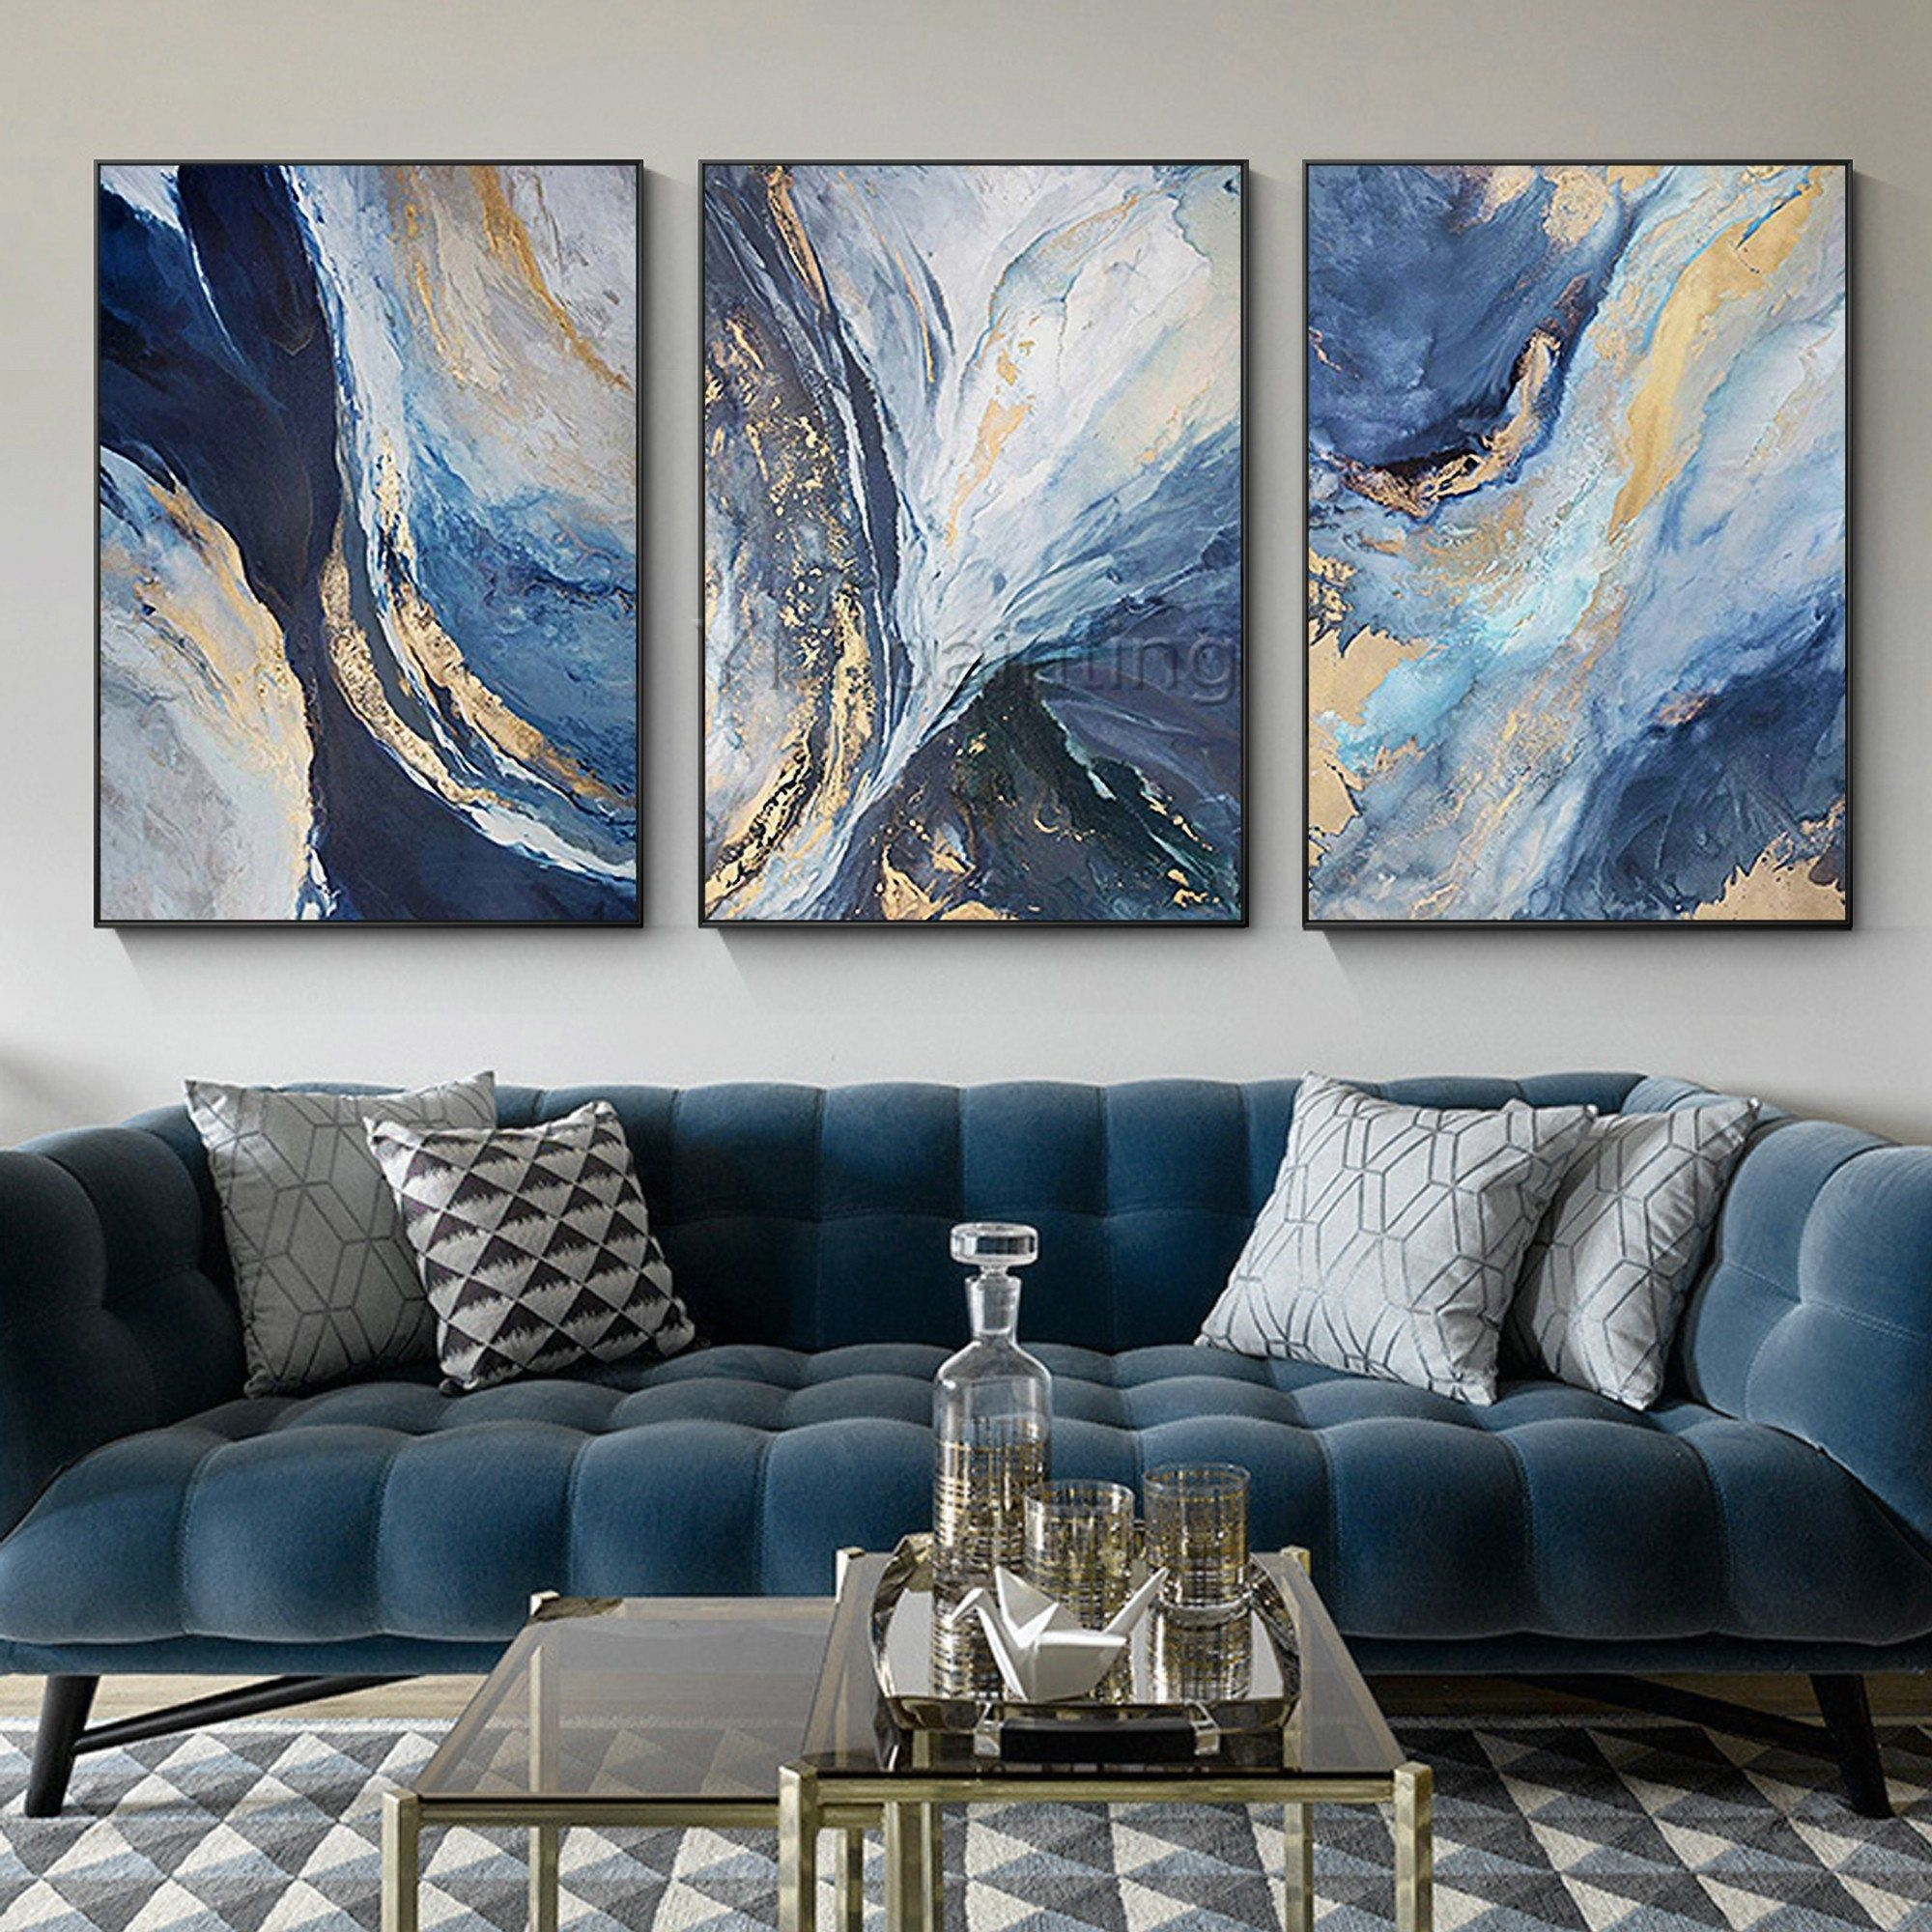 Gold Art 3 Pieces Wall Art Abstract Acrylic Paintings On Canvas Ocean Blue Painting Set Of Blue Living Room Decor Abstract Wall Art Living Room Living Room Art